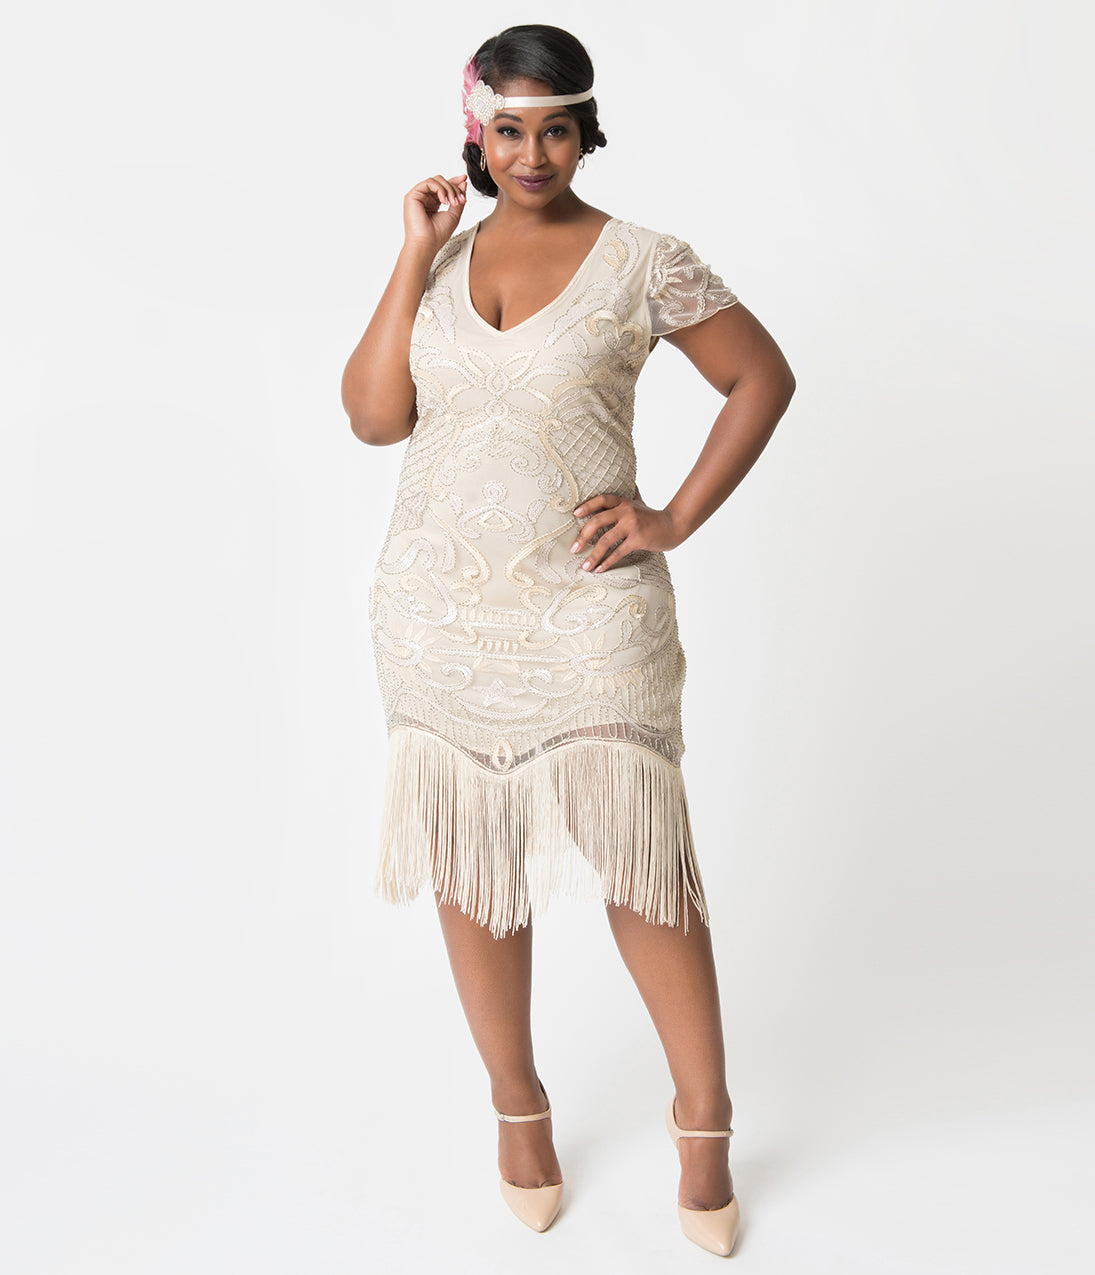 Vintage Inspired Wedding Dress | Vintage Style Wedding Dresses Unique Vintage Plus Size 1920S Style Champagne Beaded Fringe Aurore Flapper Dress $98.00 AT vintagedancer.com